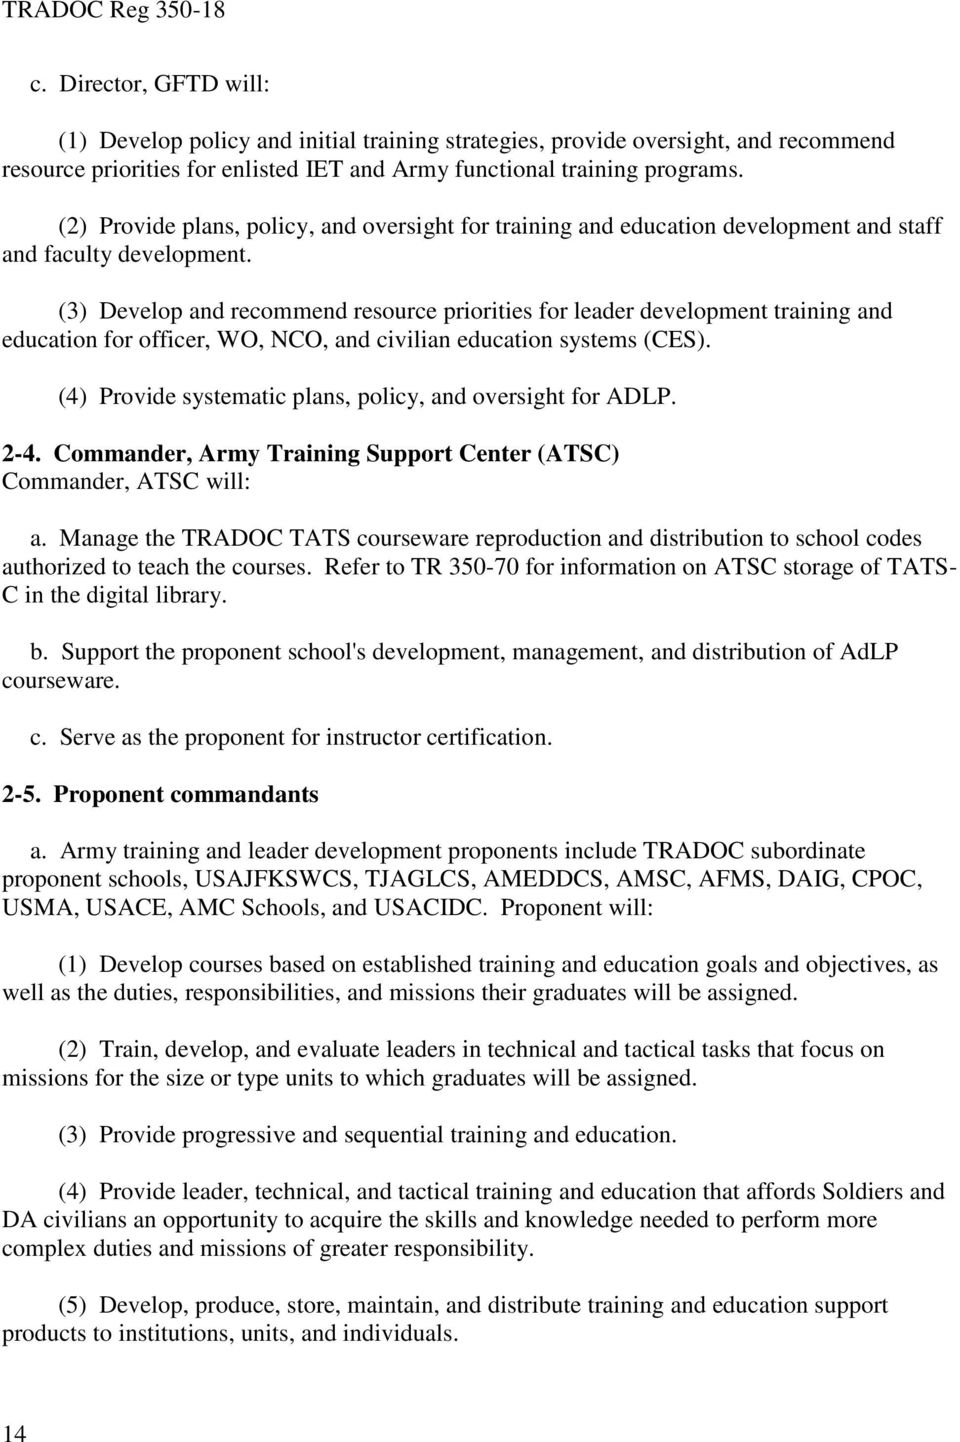 united states army training and doctrine Tradoc designs the future force to ensure that the united states army remains the dominant land power in the world multi-domain battle is the concept that will allow the army, with the.